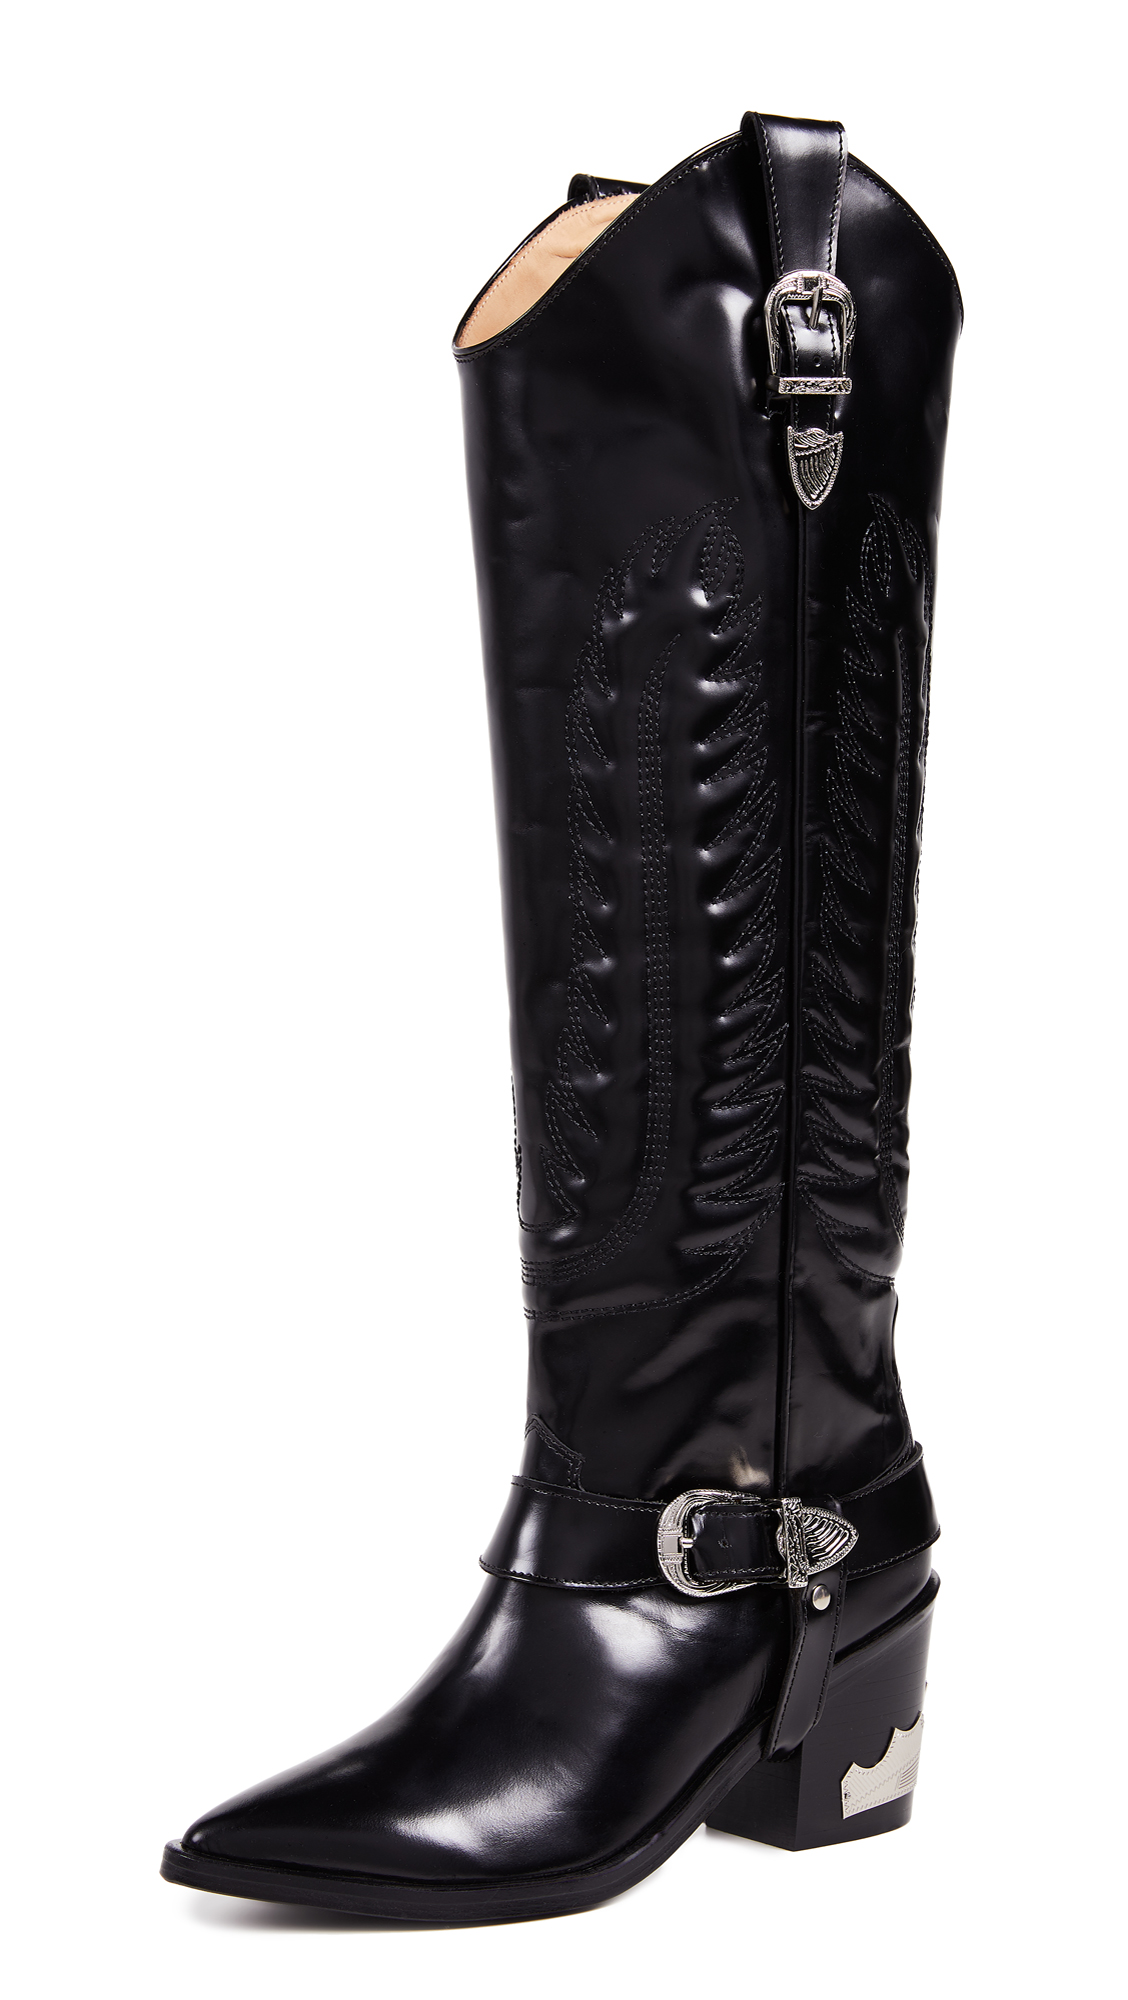 Toga Pulla Tall Buckled Boots - Black